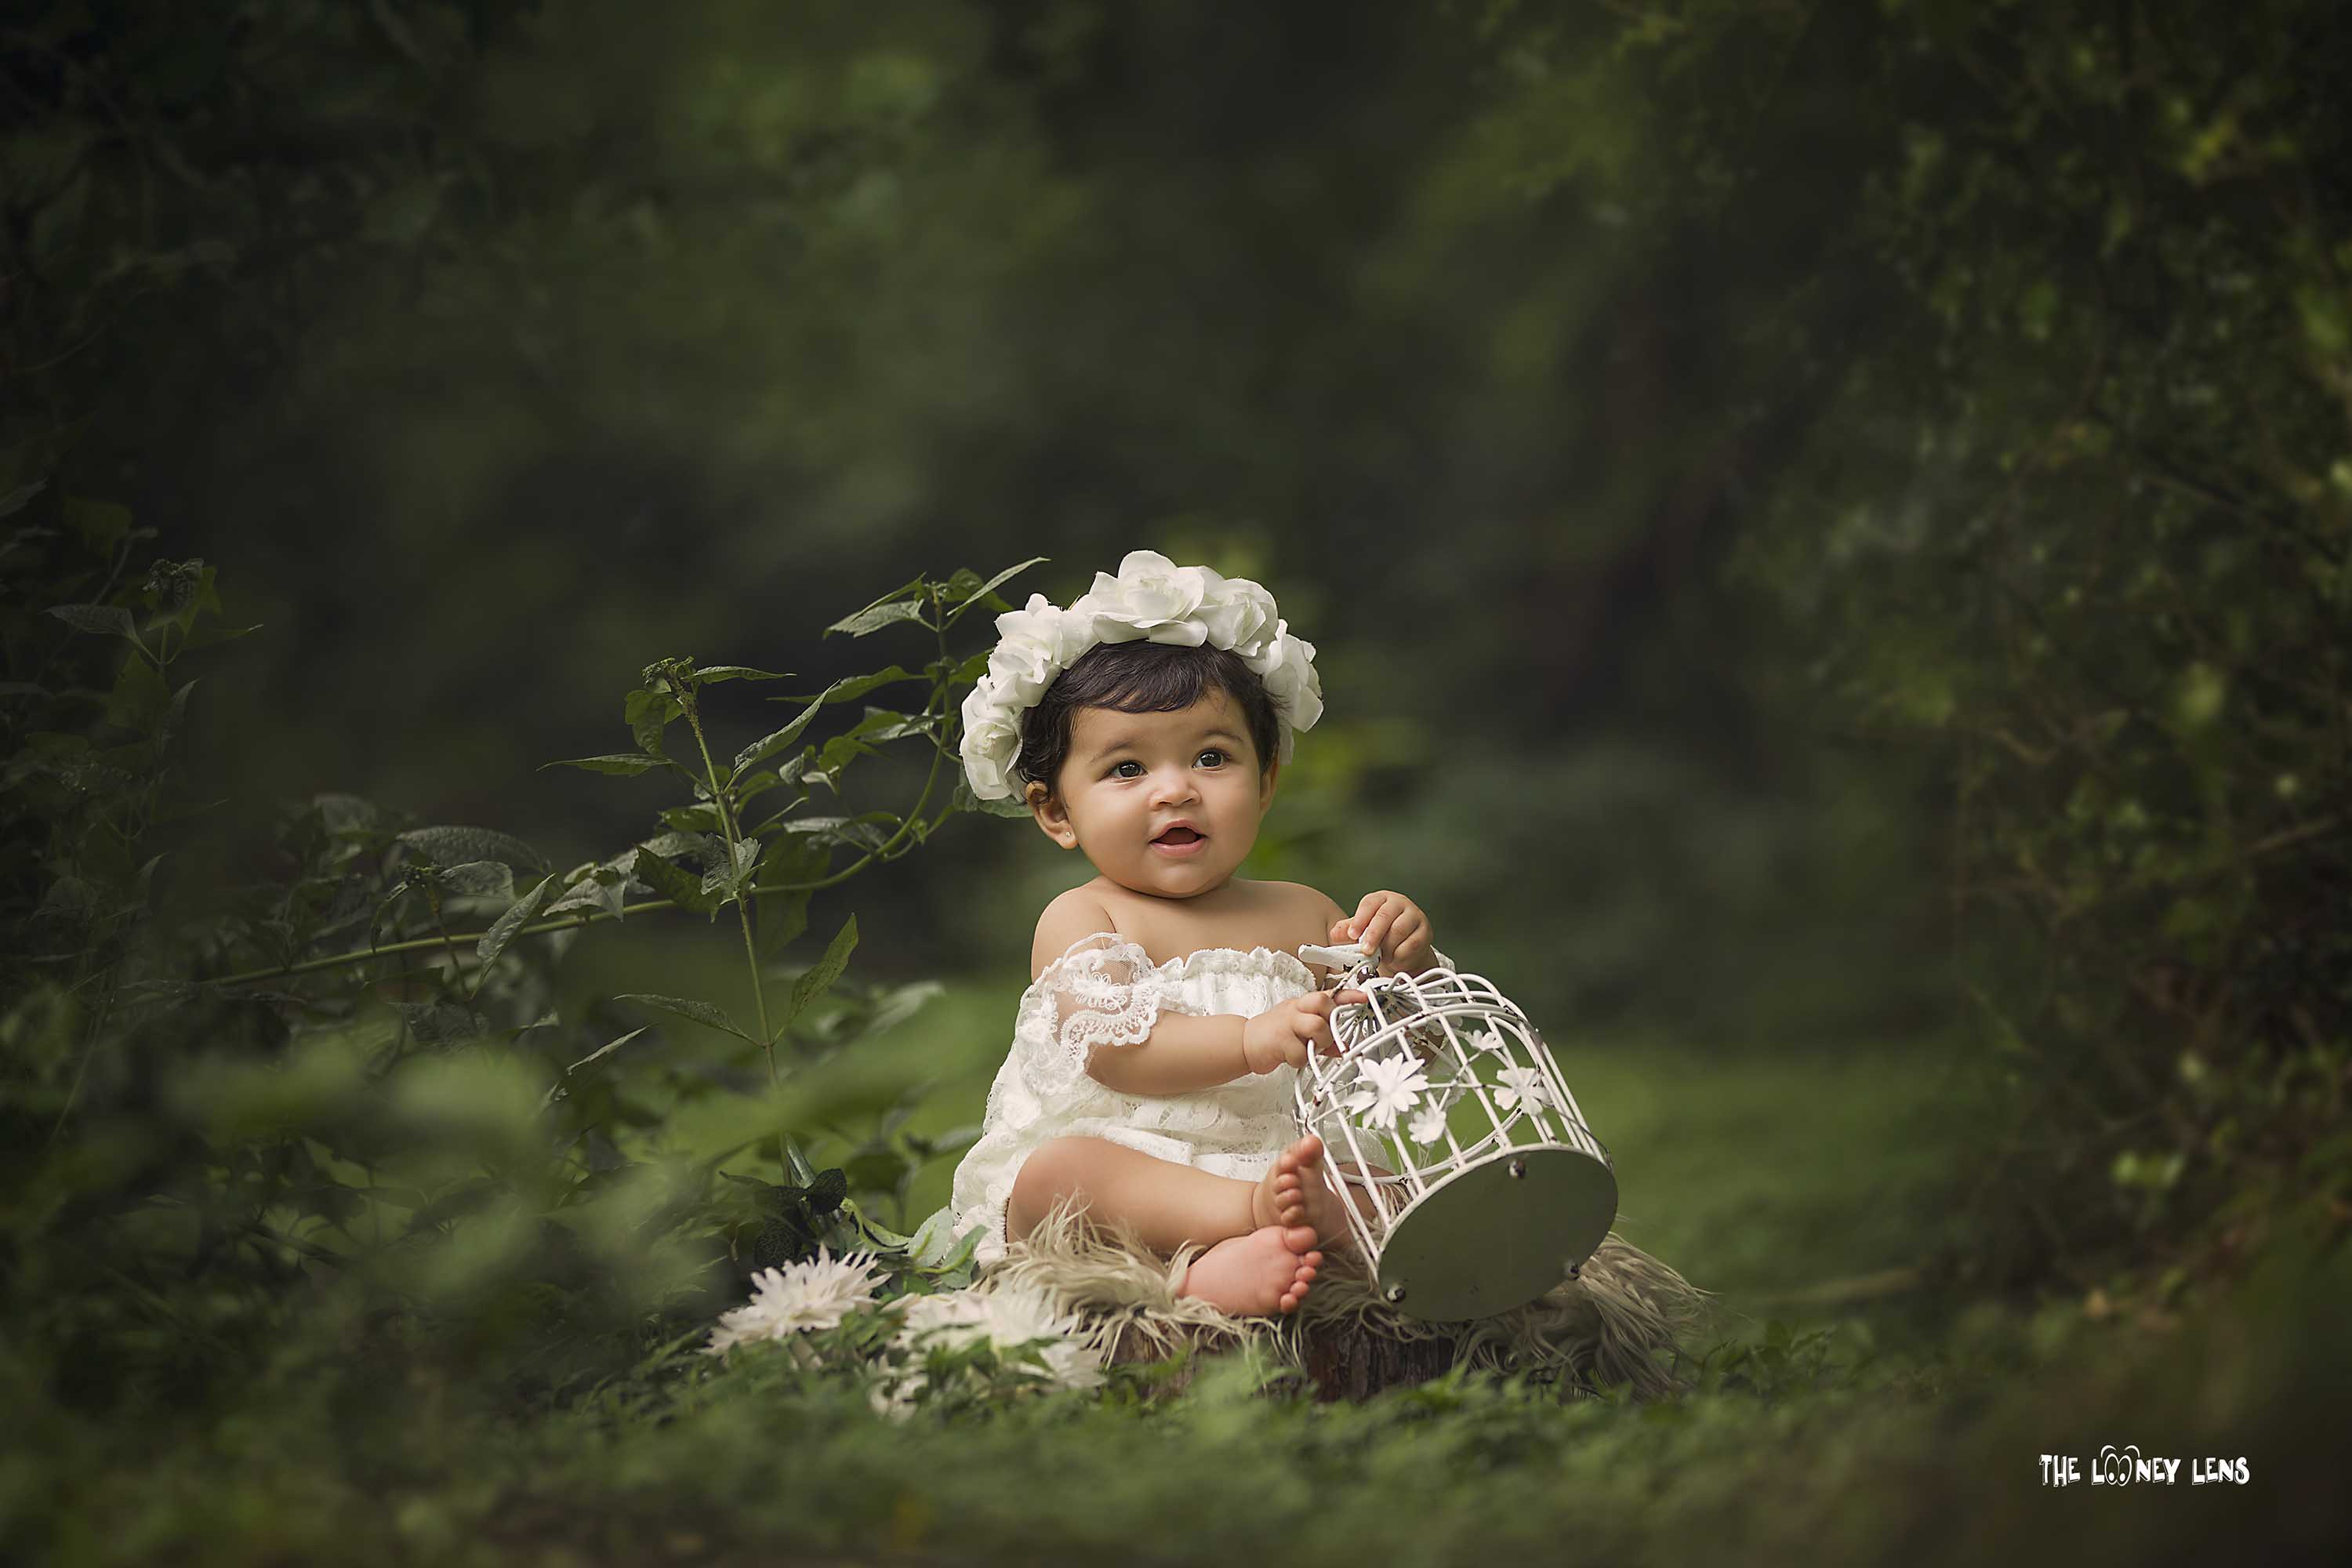 Toddler The Looney Lens Photography Infant Newborn Kids Maternity Family